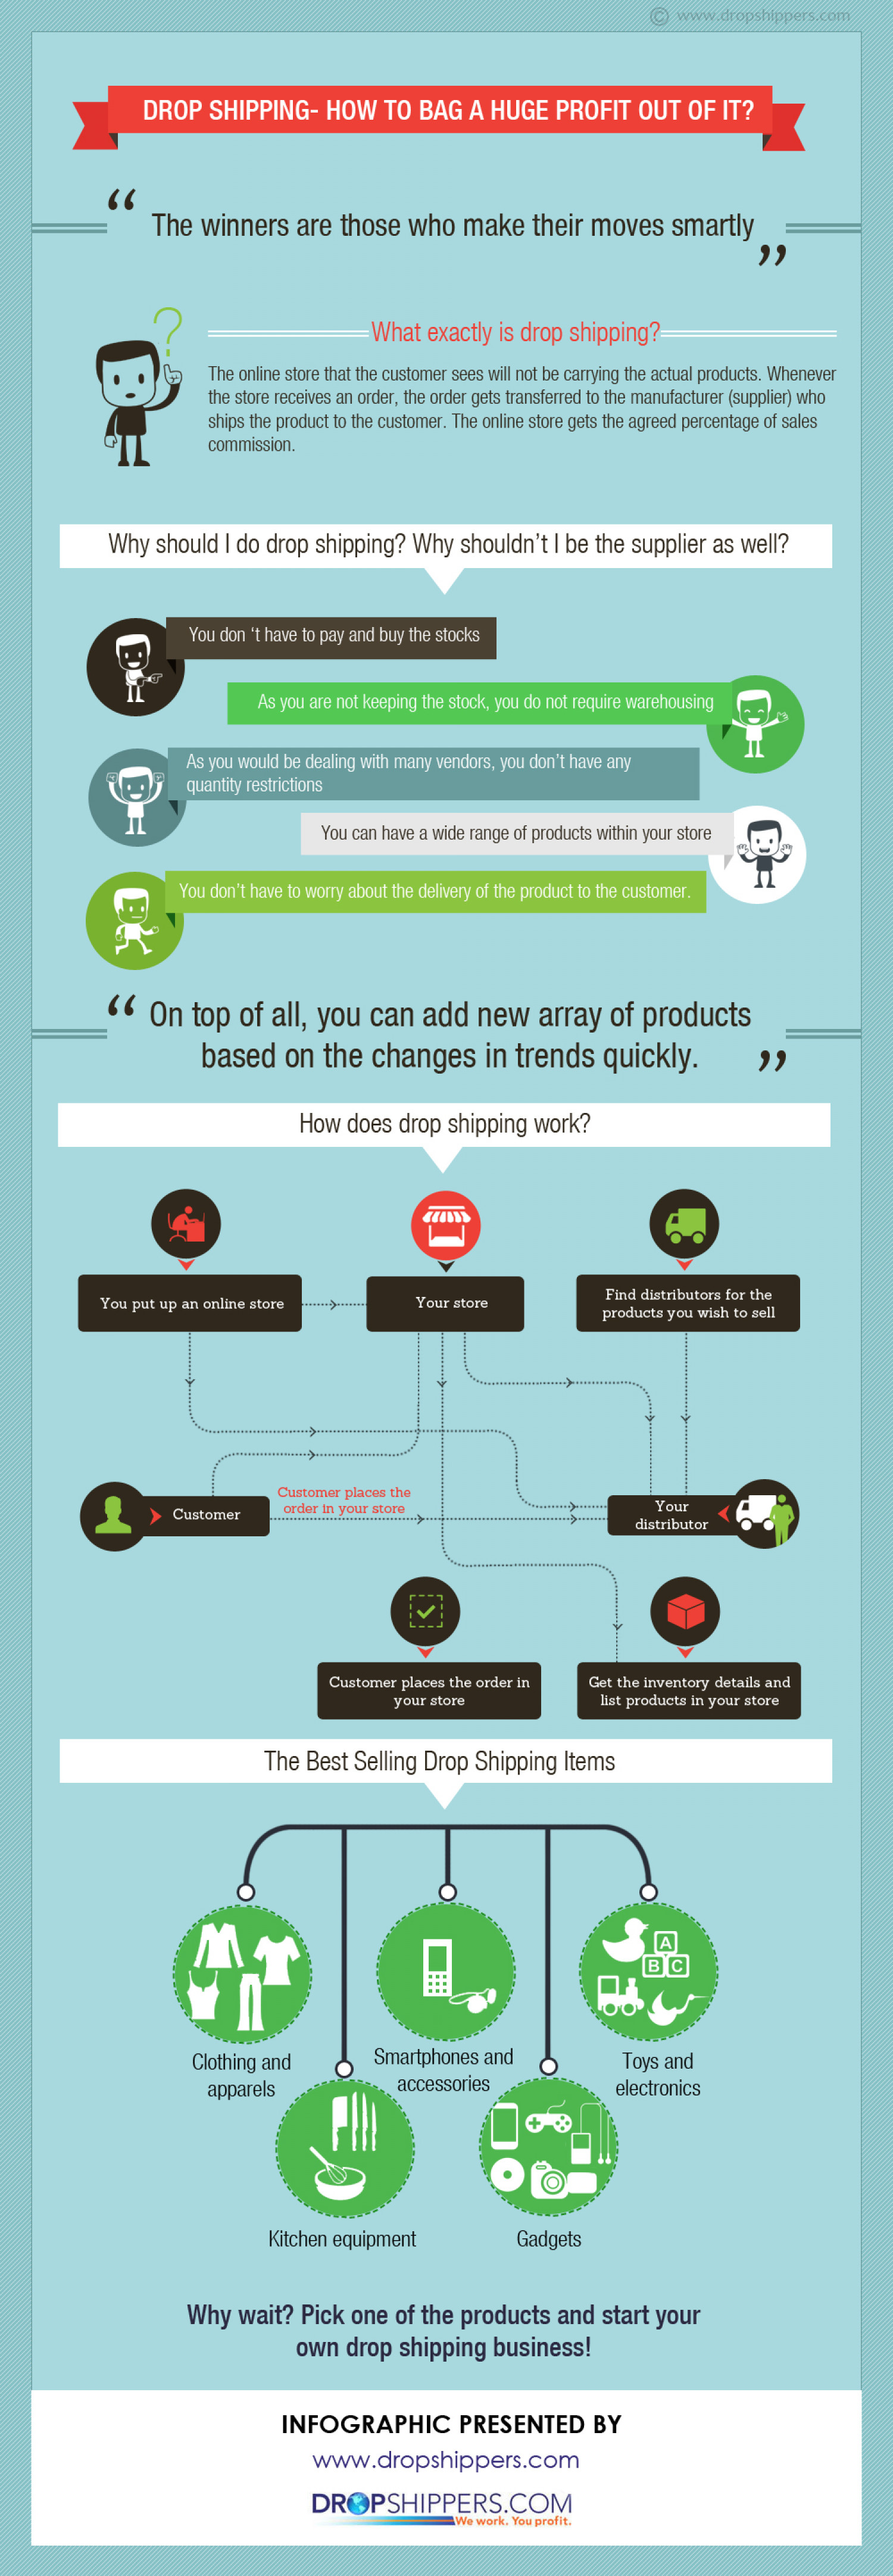 Drop Shipping Business Brings Huge Profit for You At The Expense Of Limited Labor and Time Spent Infographic